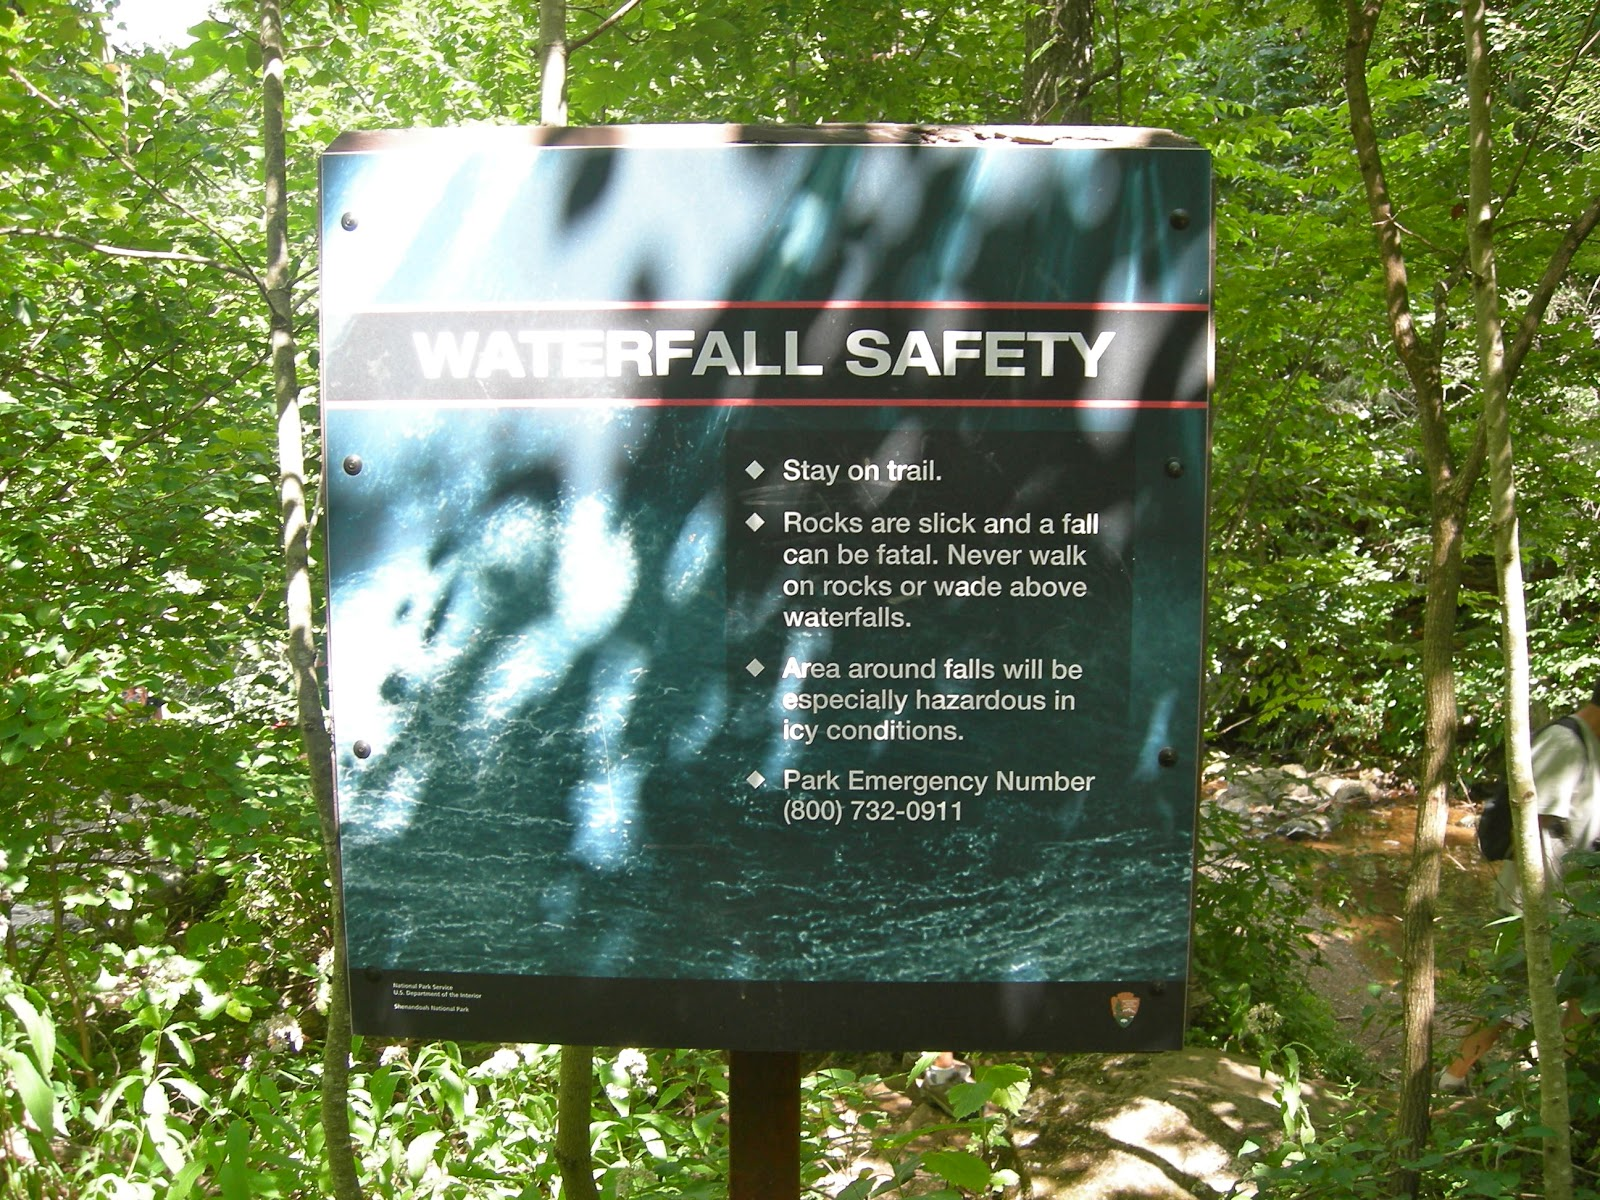 Waterfall Safety